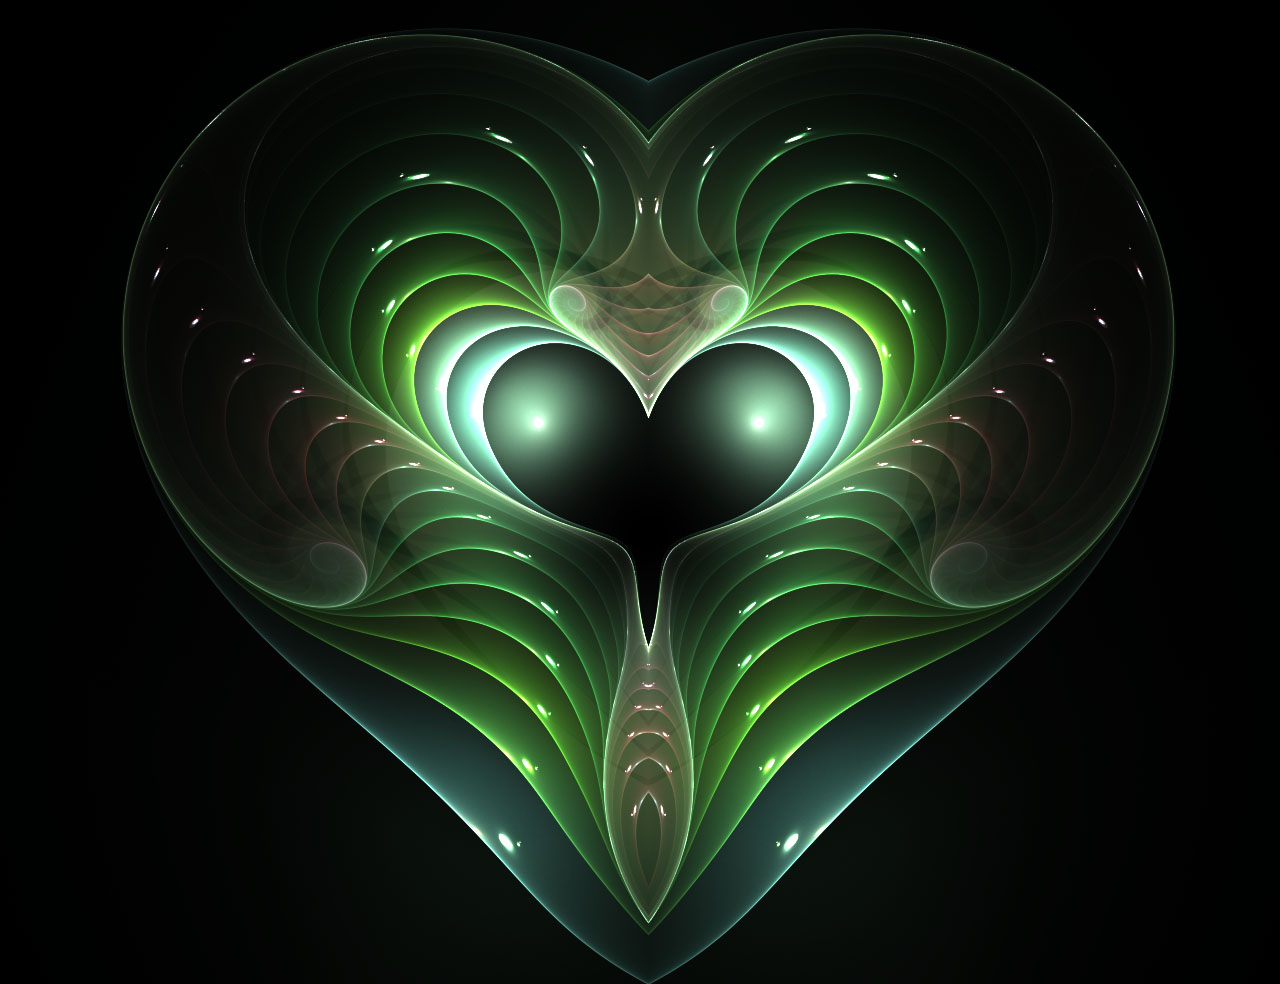 Alien Heart by mfcreative